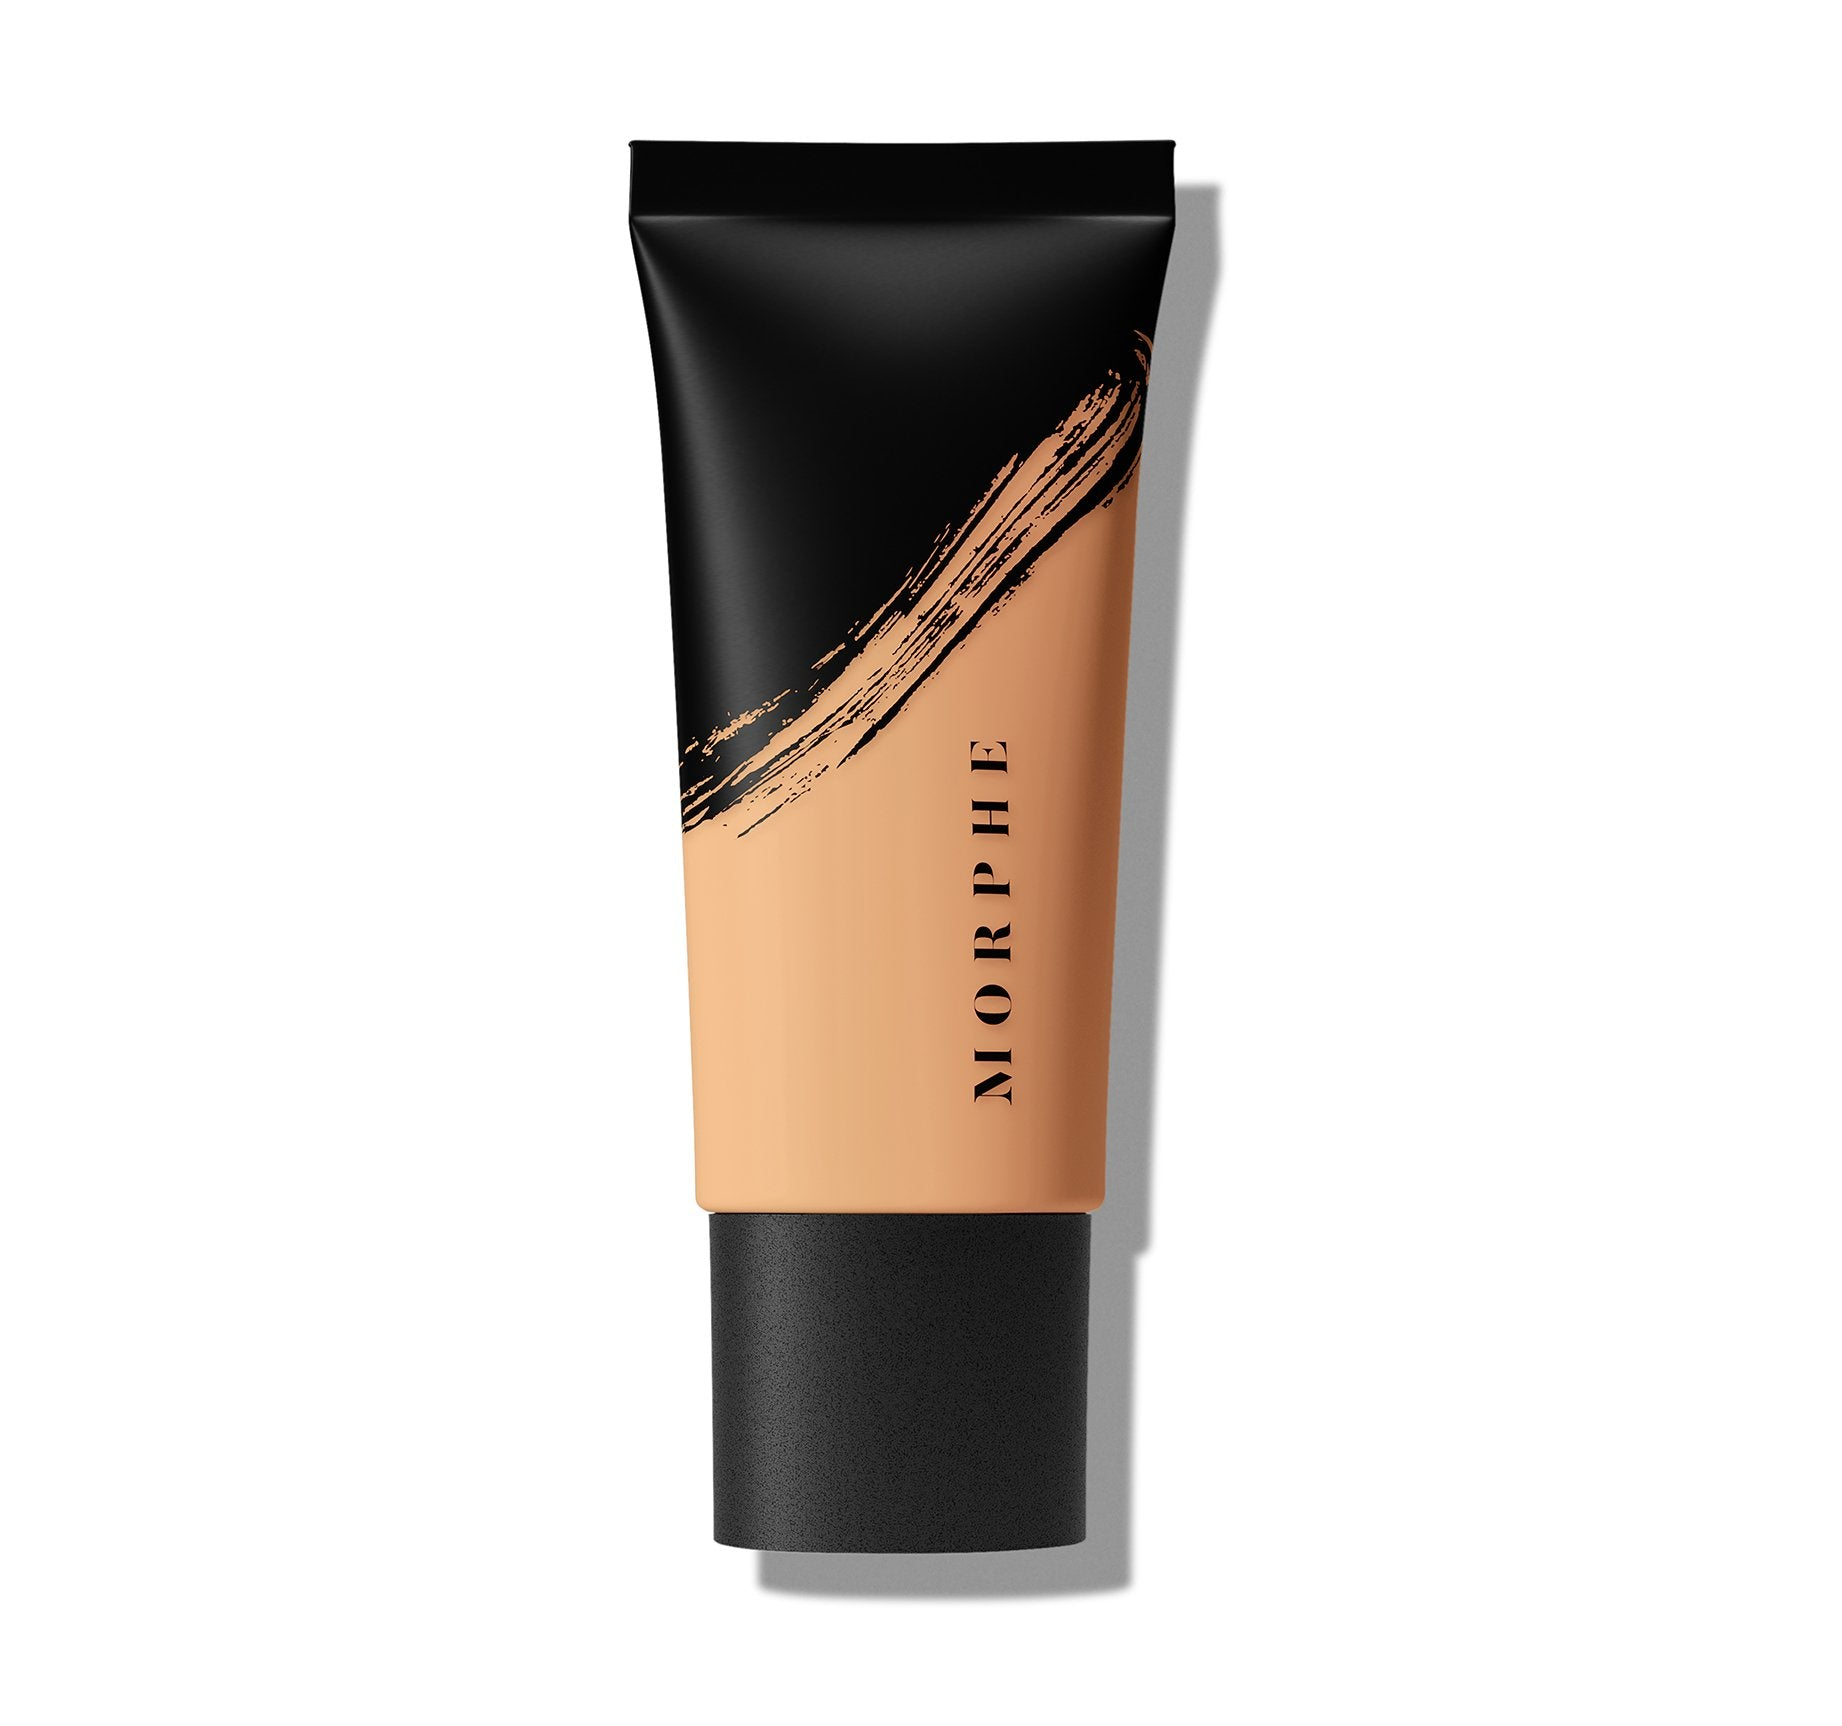 FLUIDITY FULL-COVERAGE FOUNDATION - F1.120, view larger image